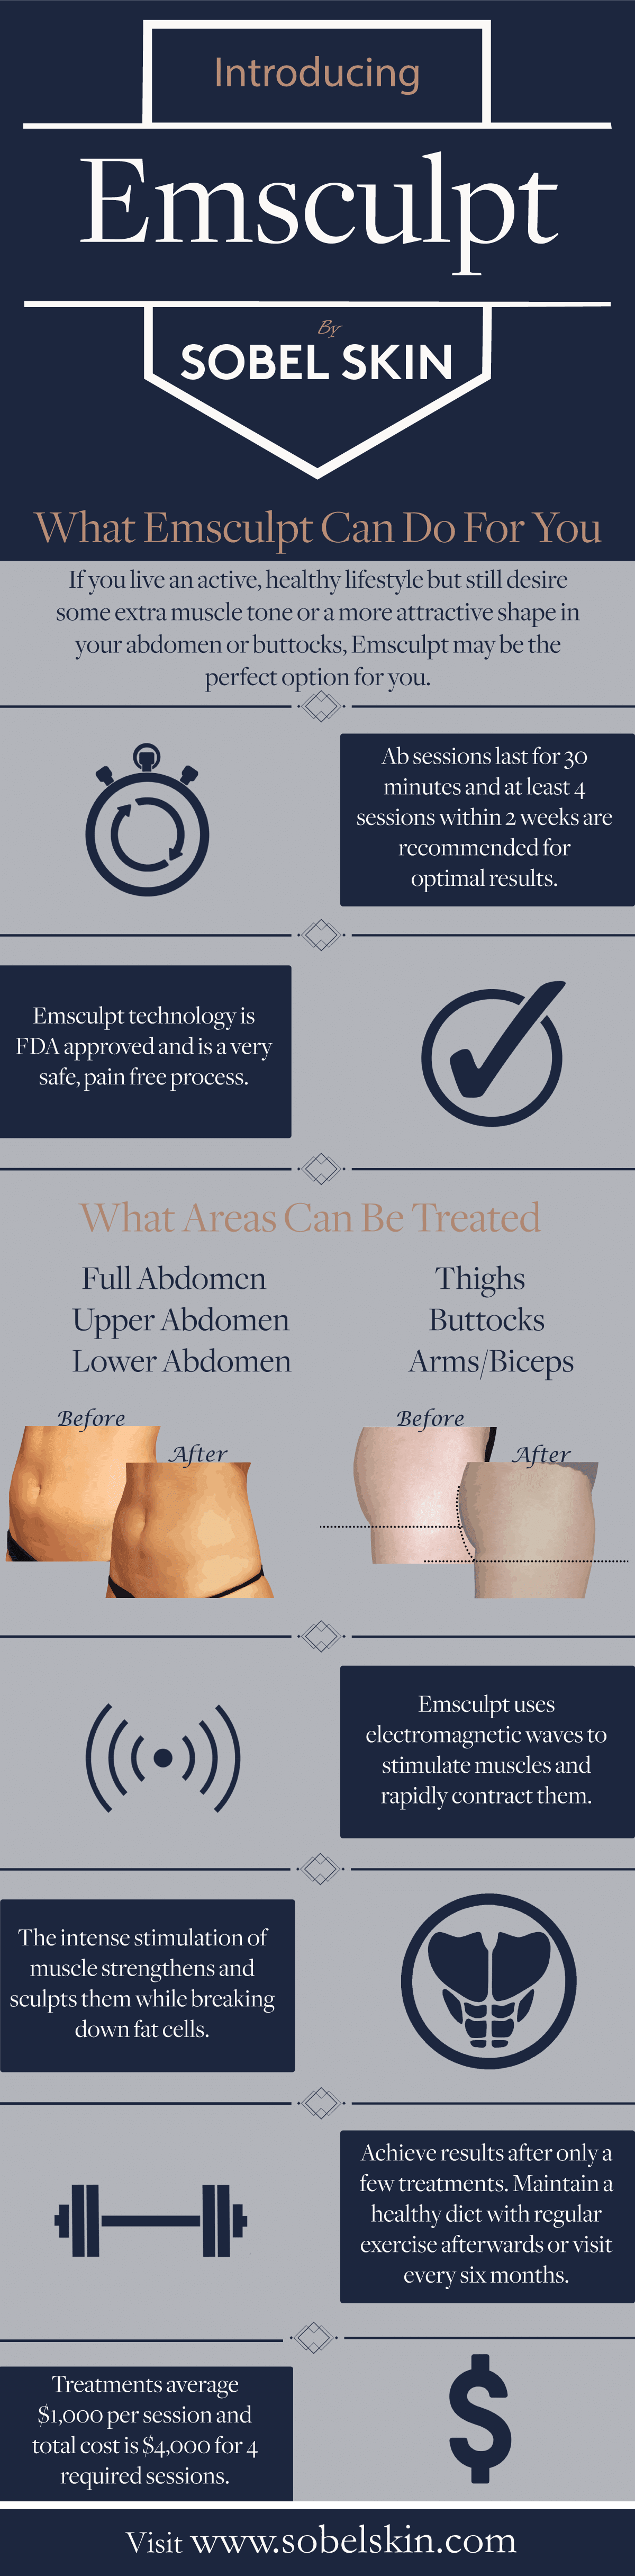 What Emsculpt Can Do For You! - Infographic from Sobel Skin